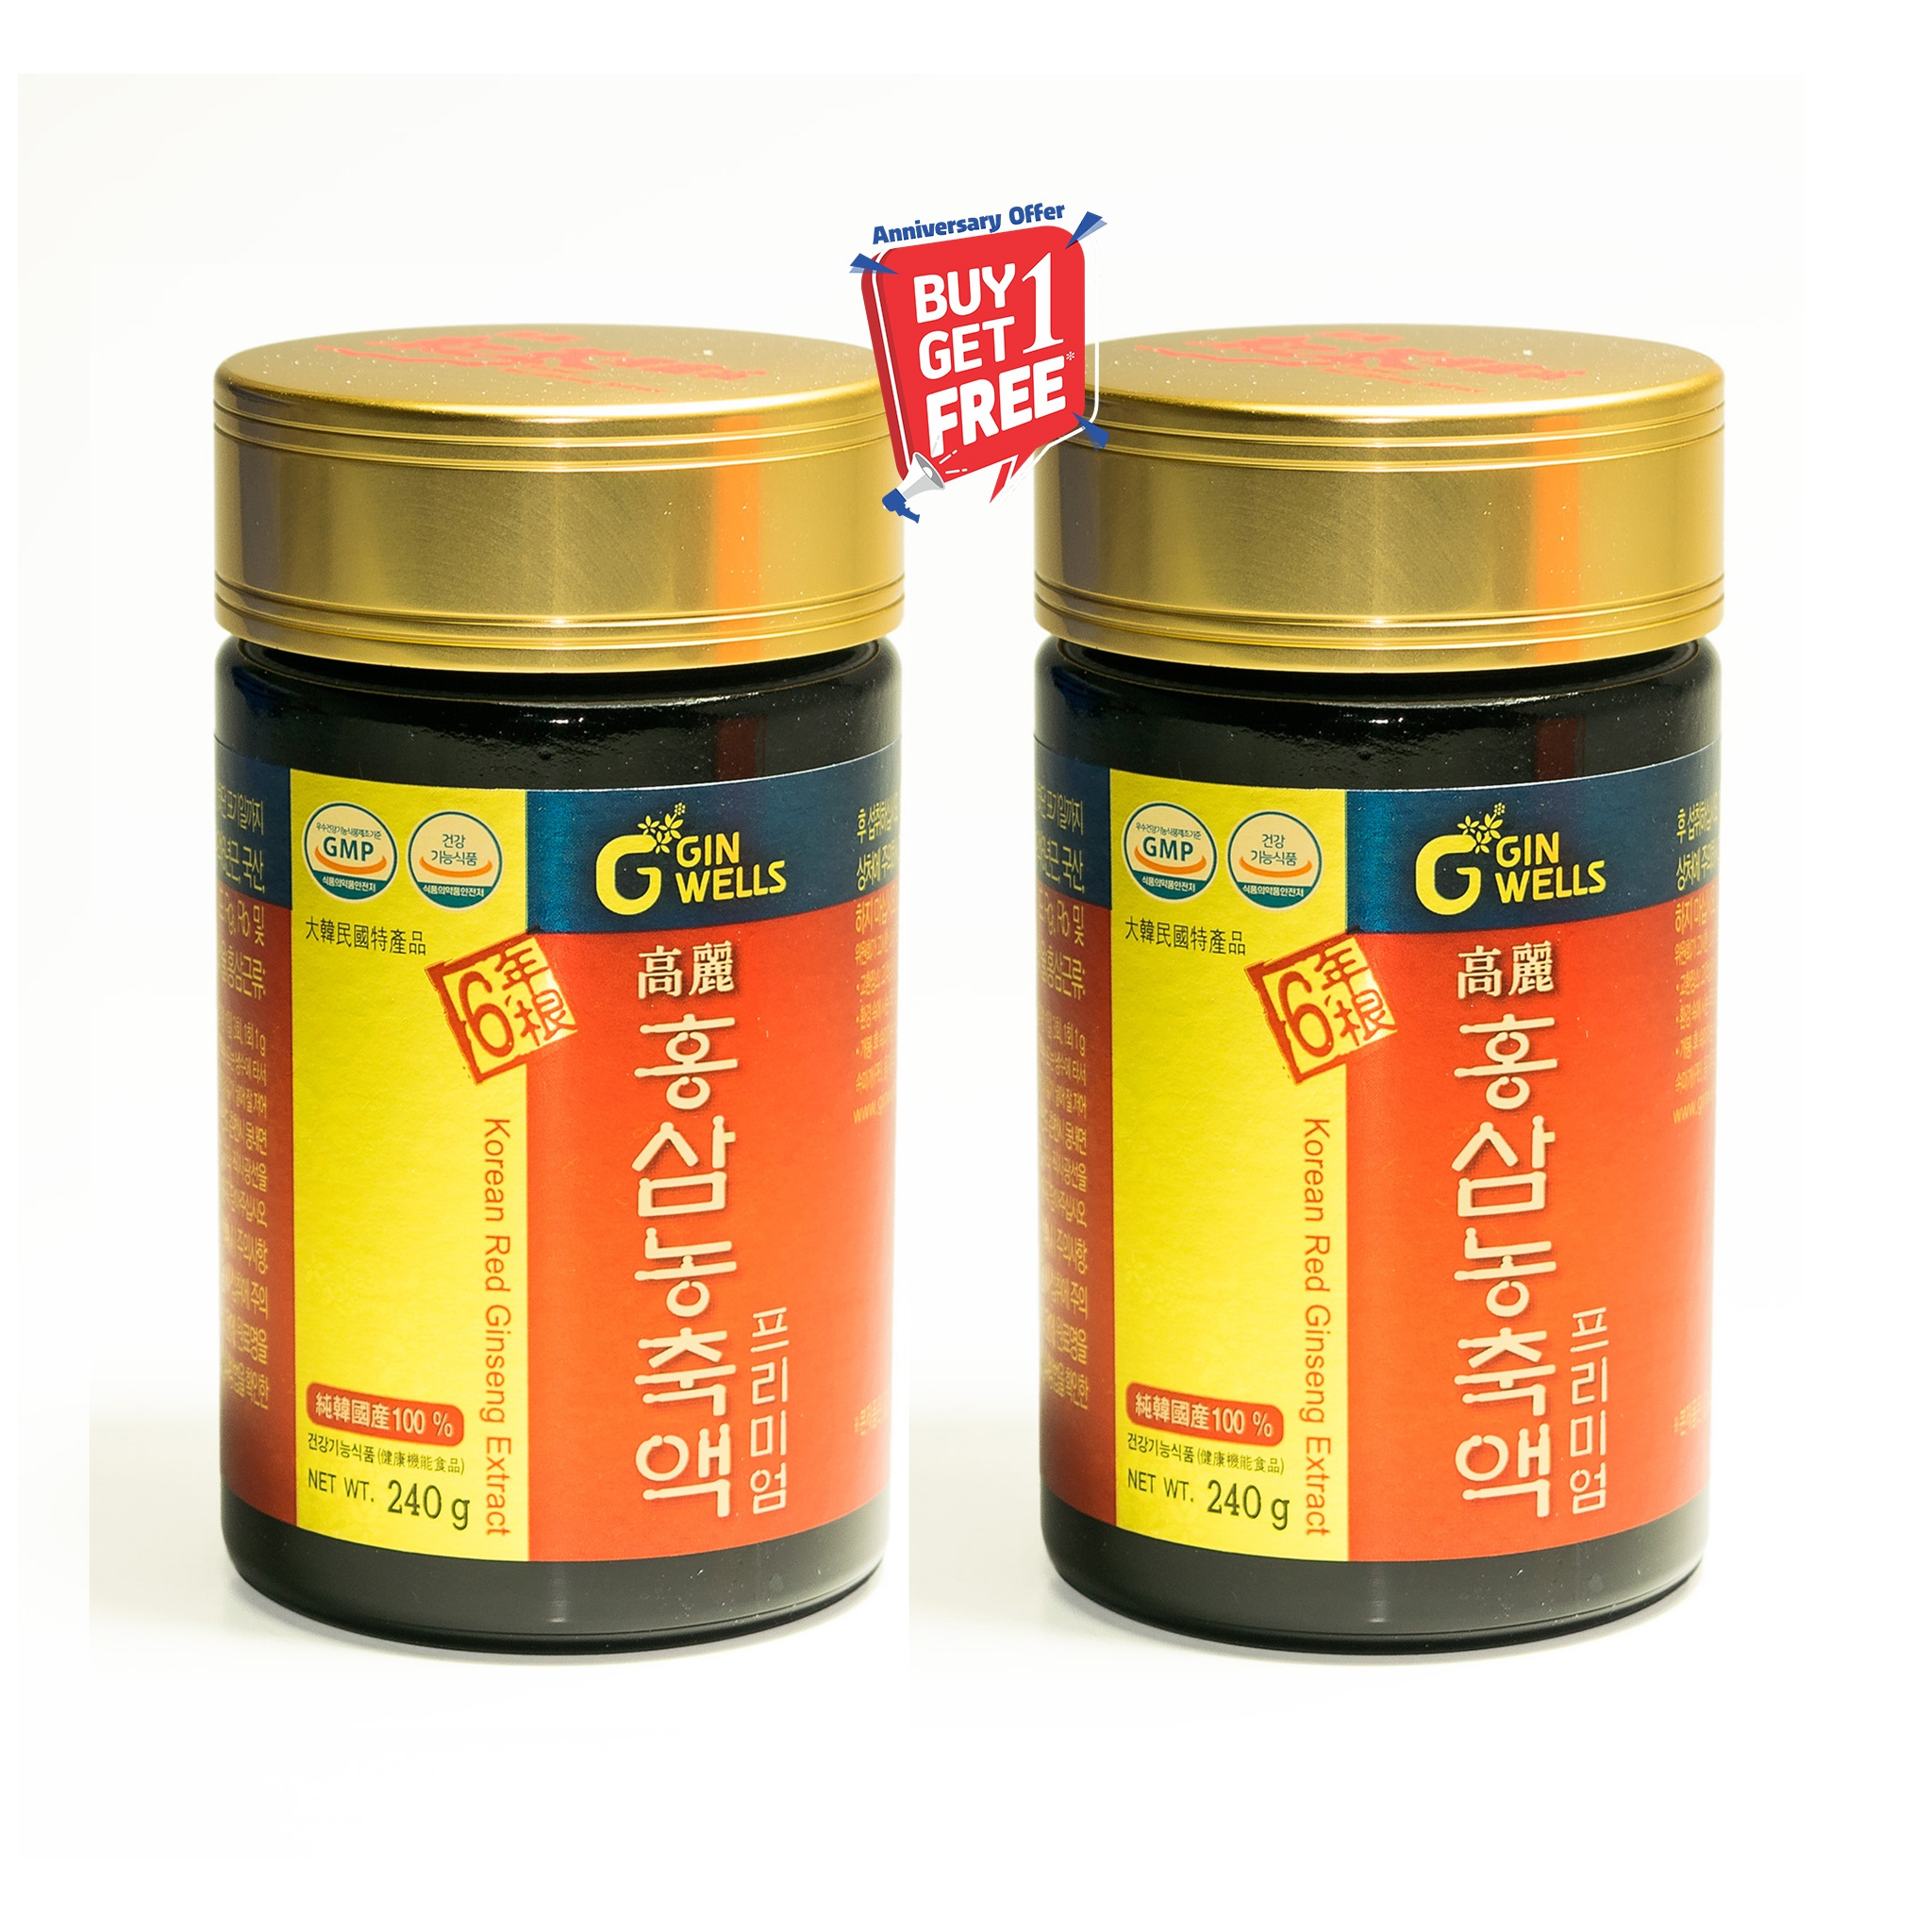 GINST 15 Korean Red Ginseng Extract 240 gms  Buy 1 Get 1 Free